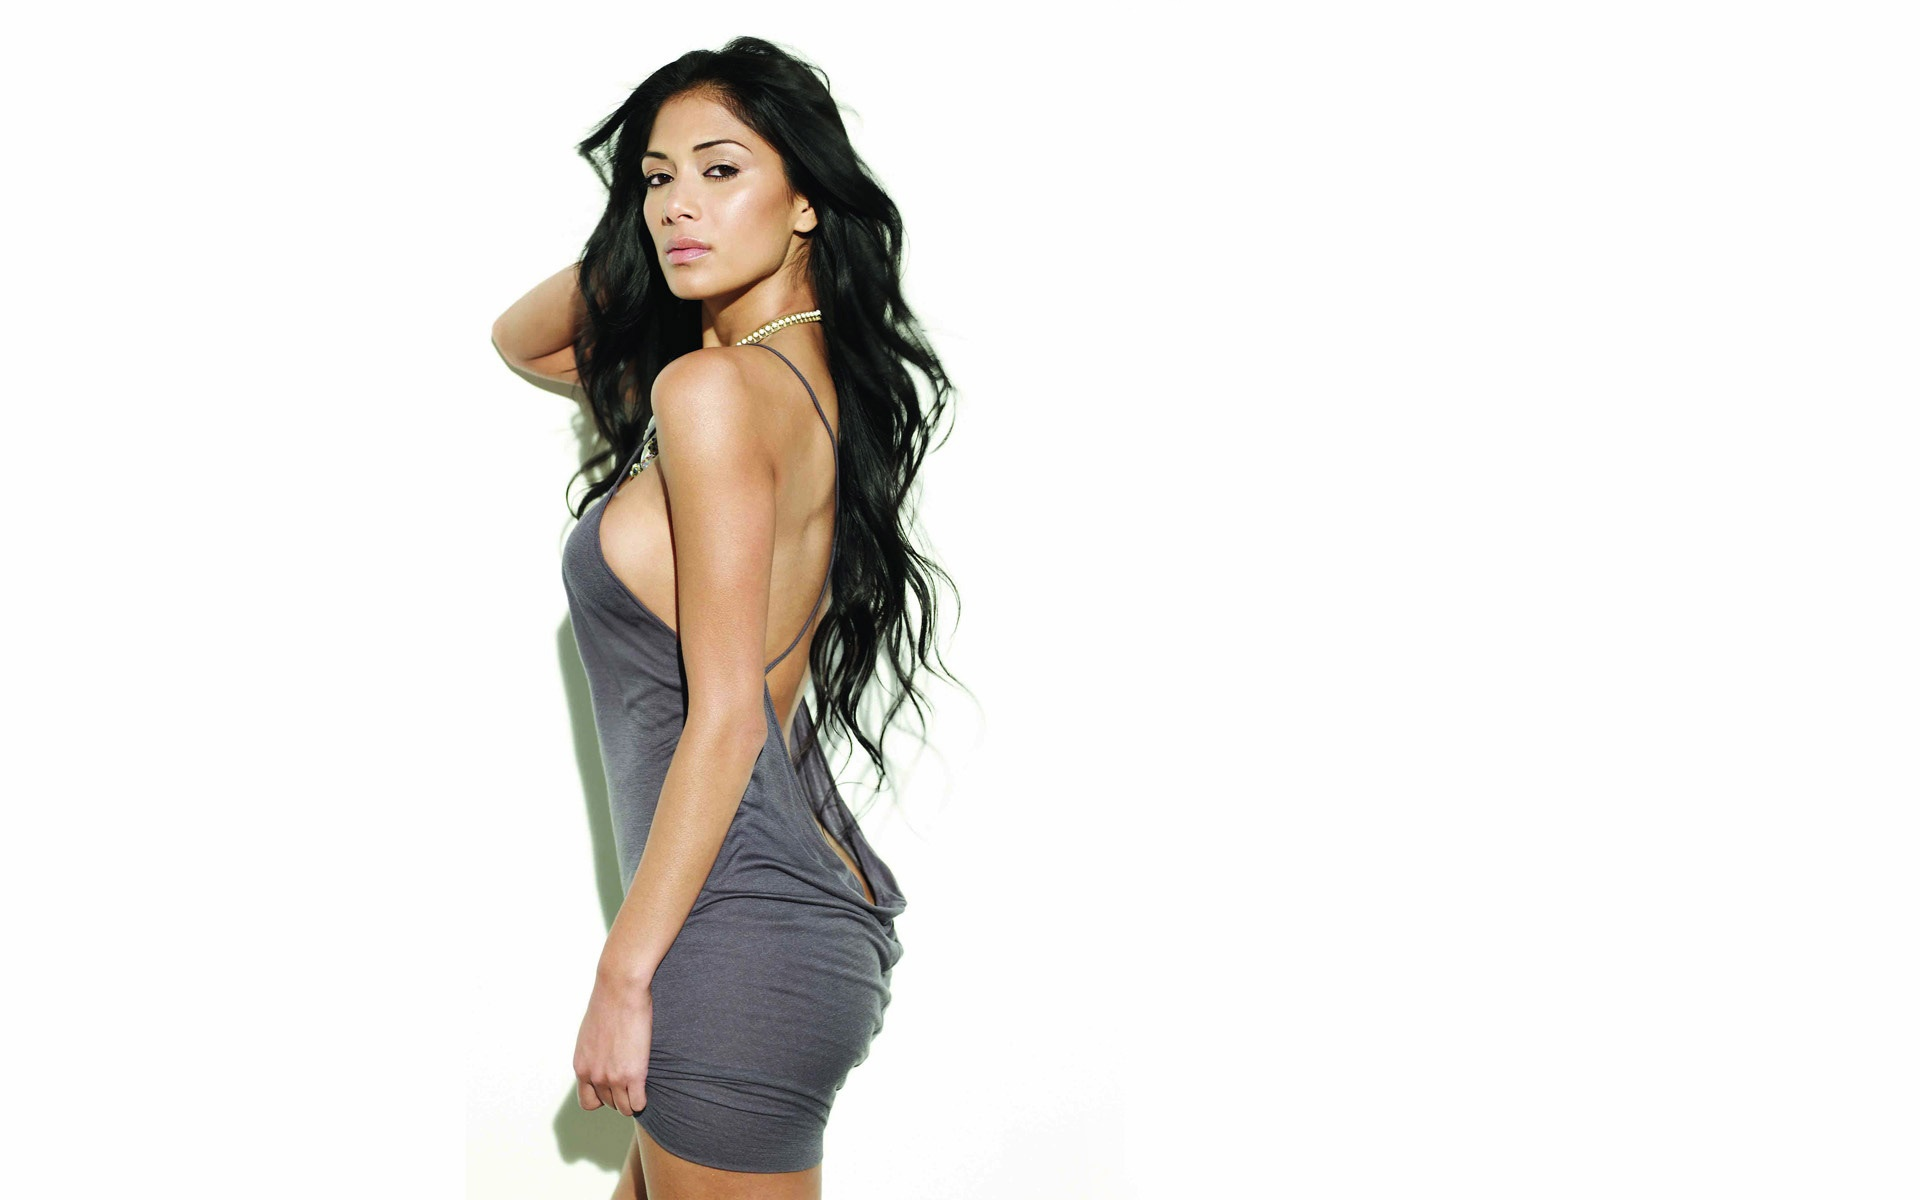 nicole scherzinger wallpapers hd A3